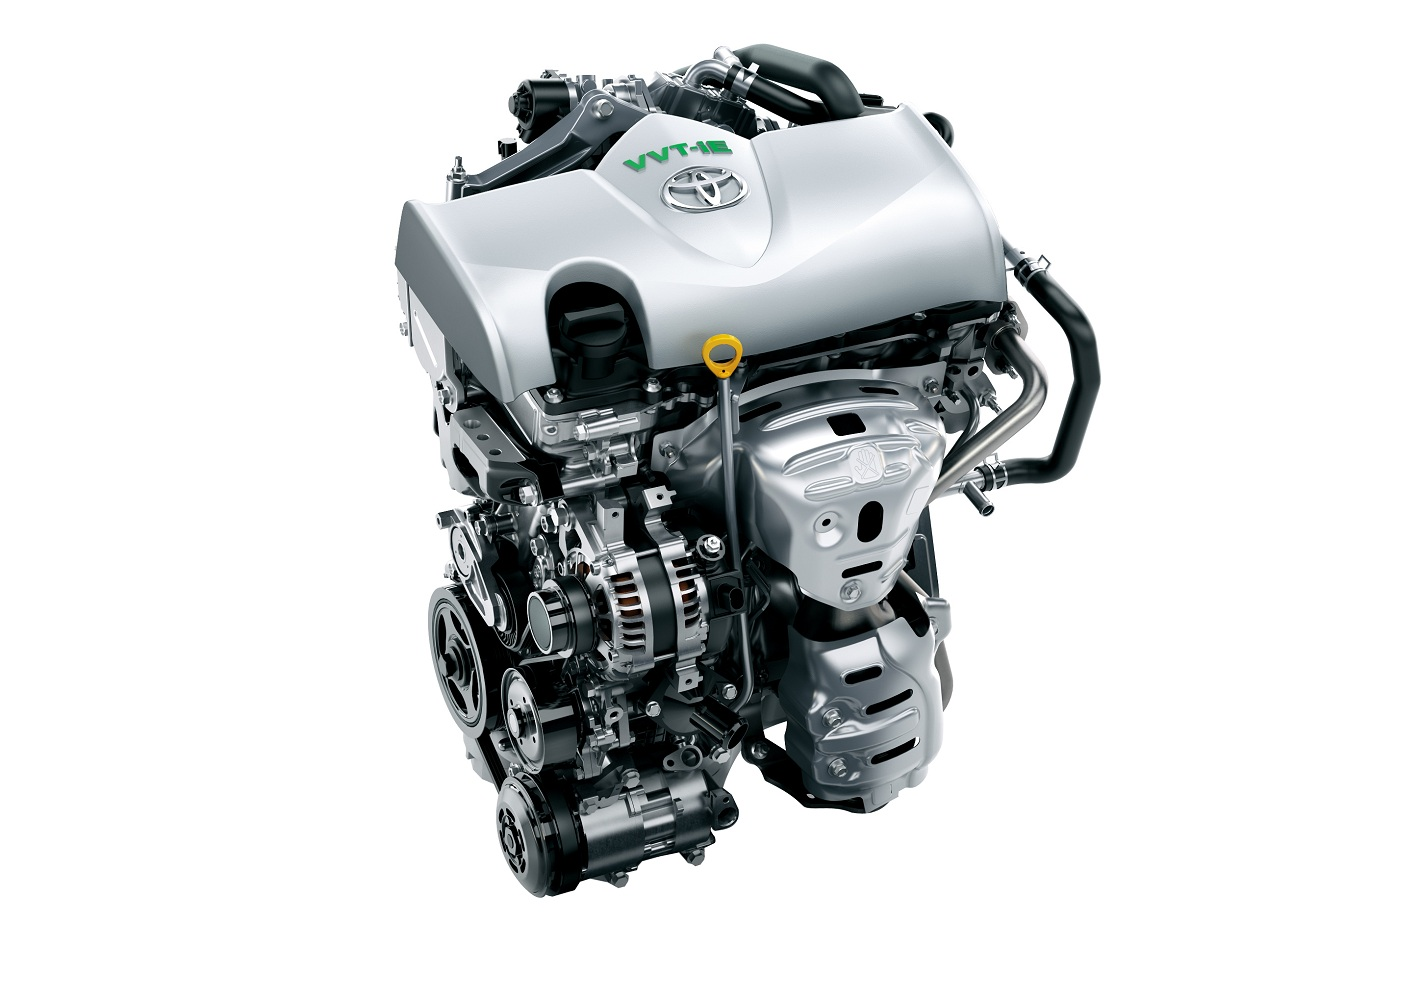 Toyota 1.3l gasoline engine